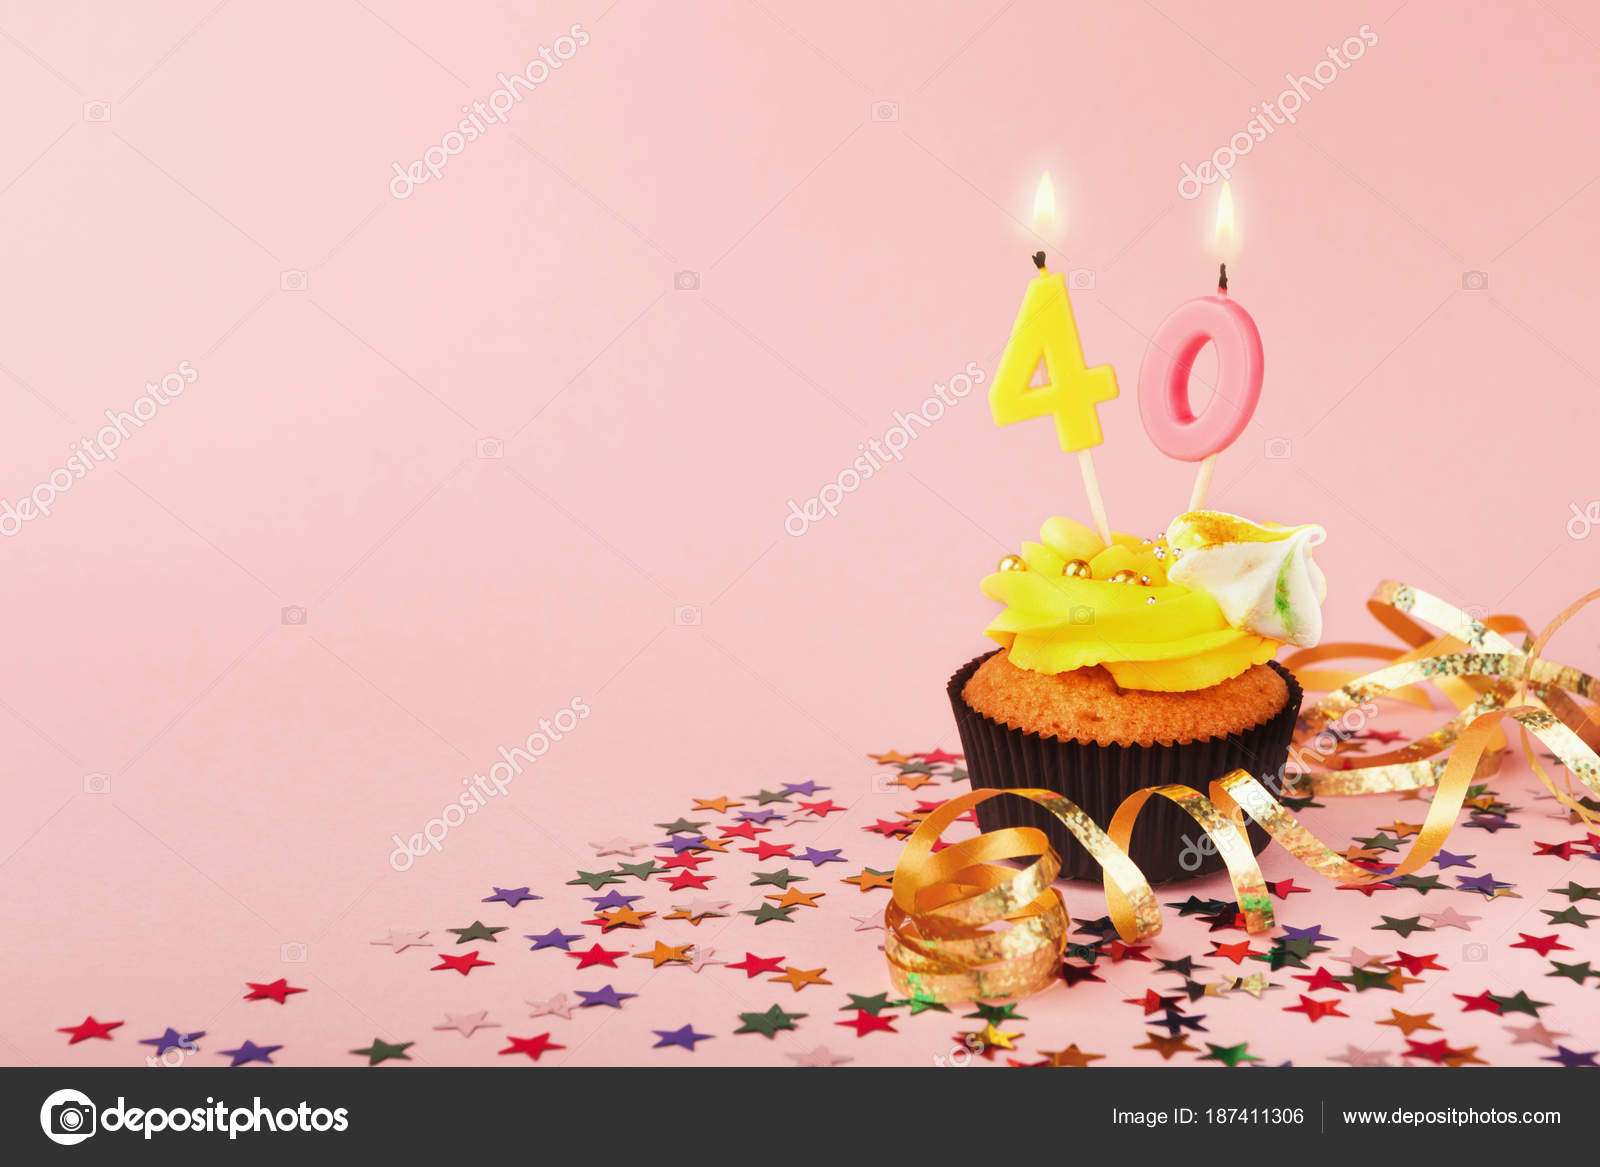 40th Birthday Cupcake With Candles Sprinkles And Ribbon On Pink Background Card Mockup Copy Space Party Holiday Concept Photo By